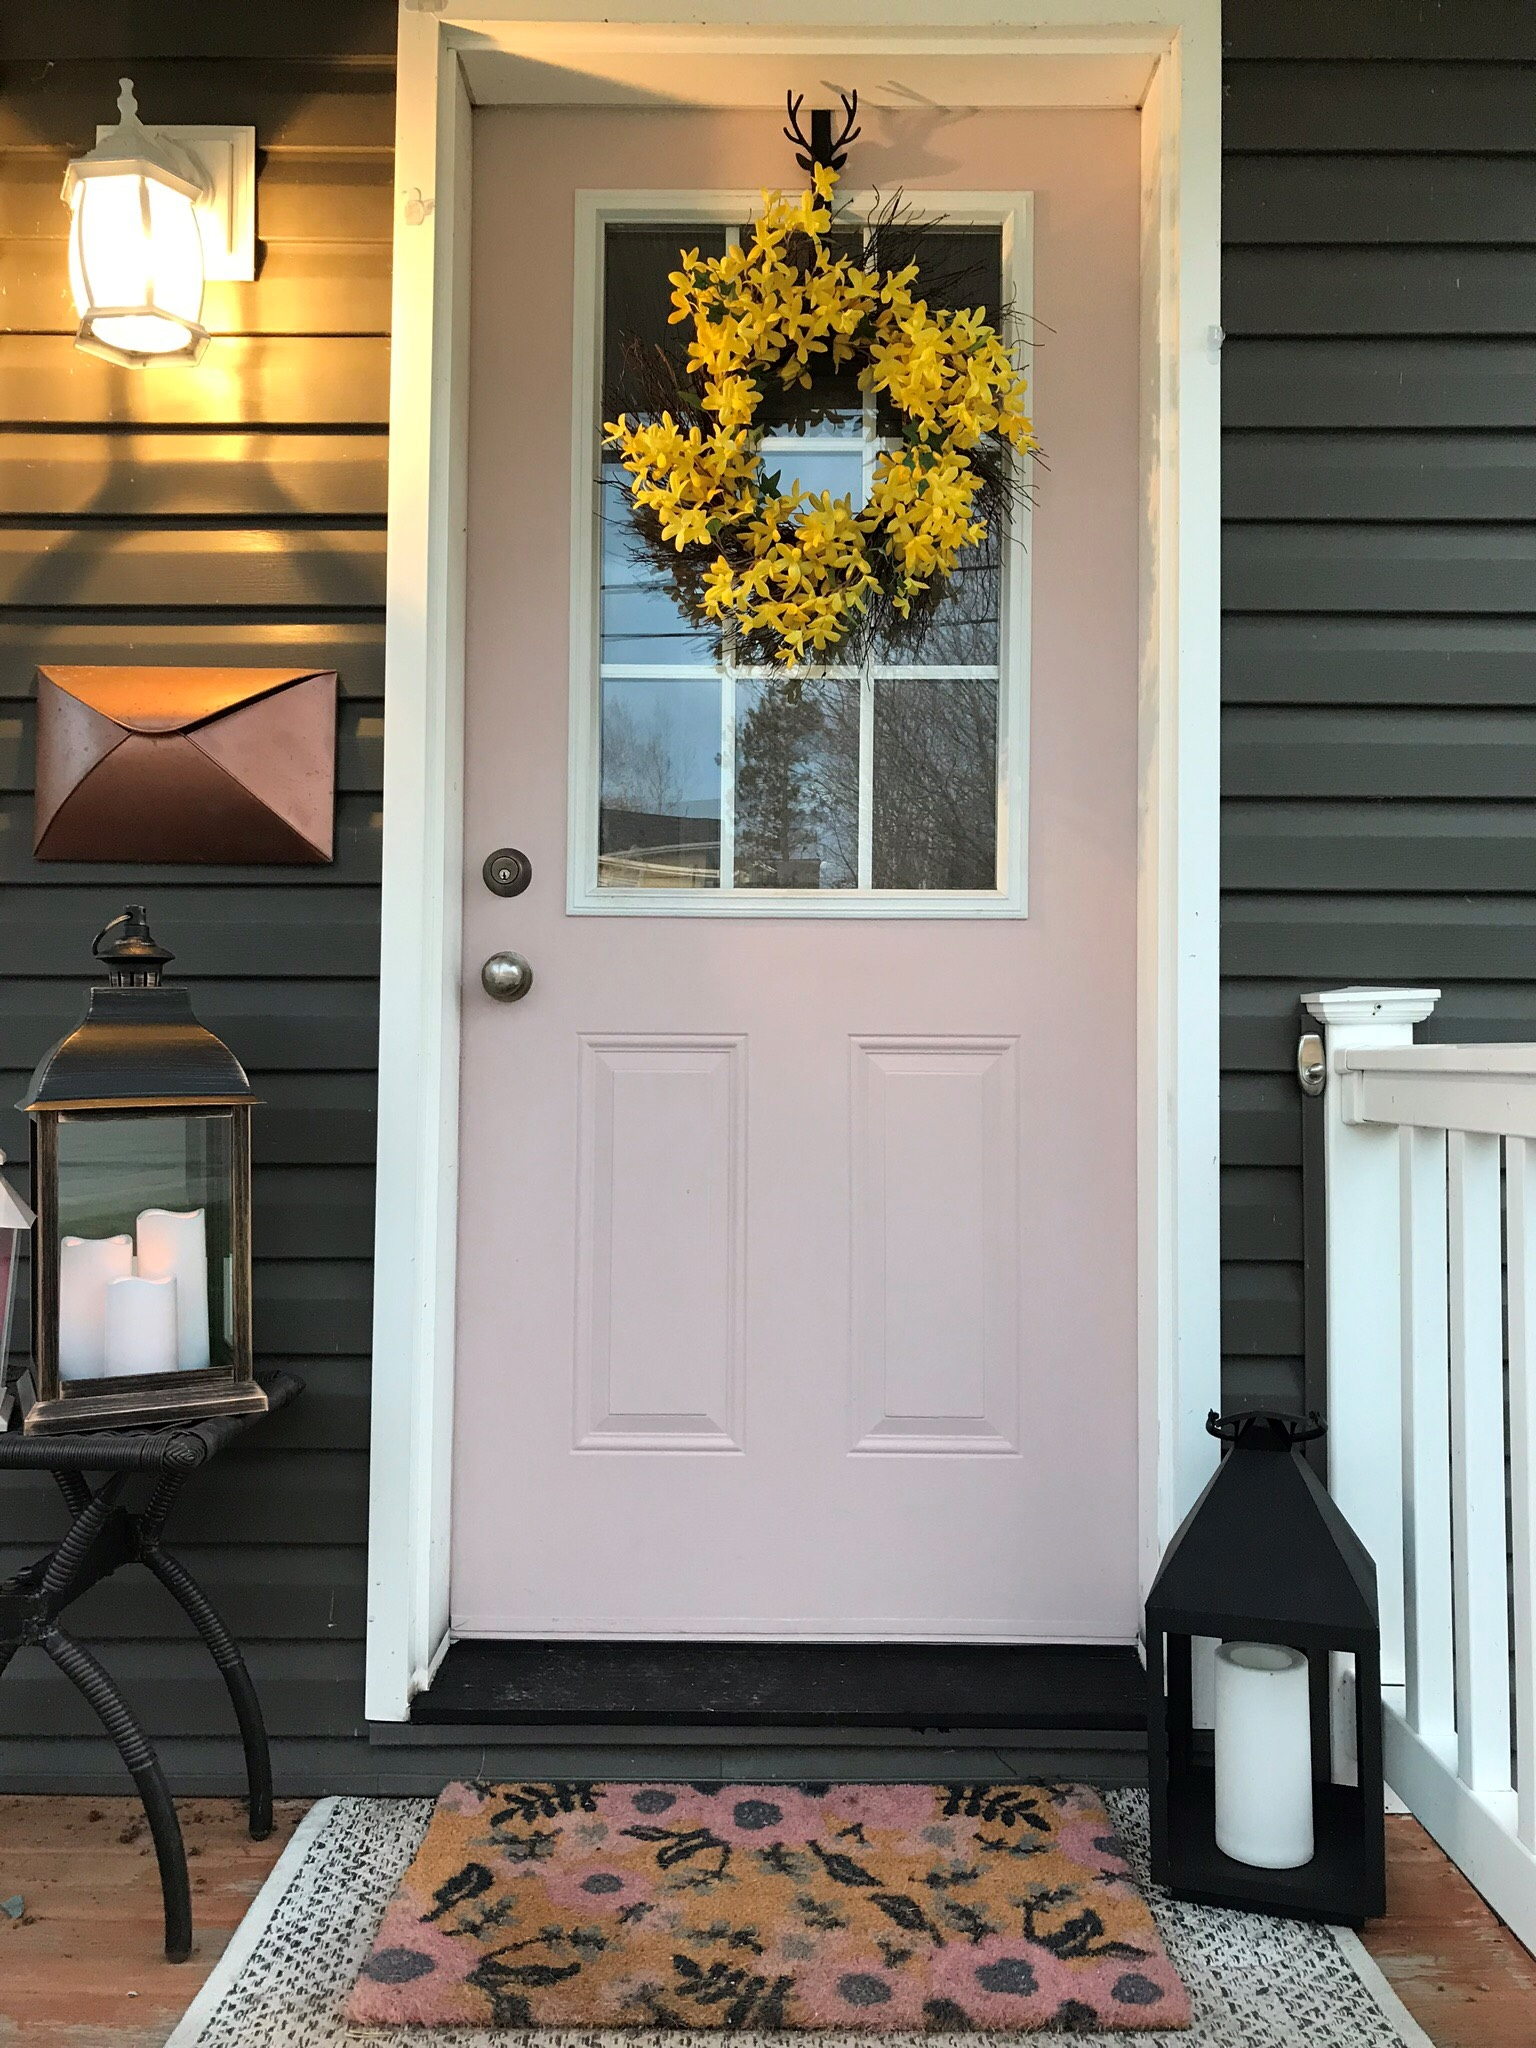 Knock, Knock? Who's There? It's Nicole's Pink Door!